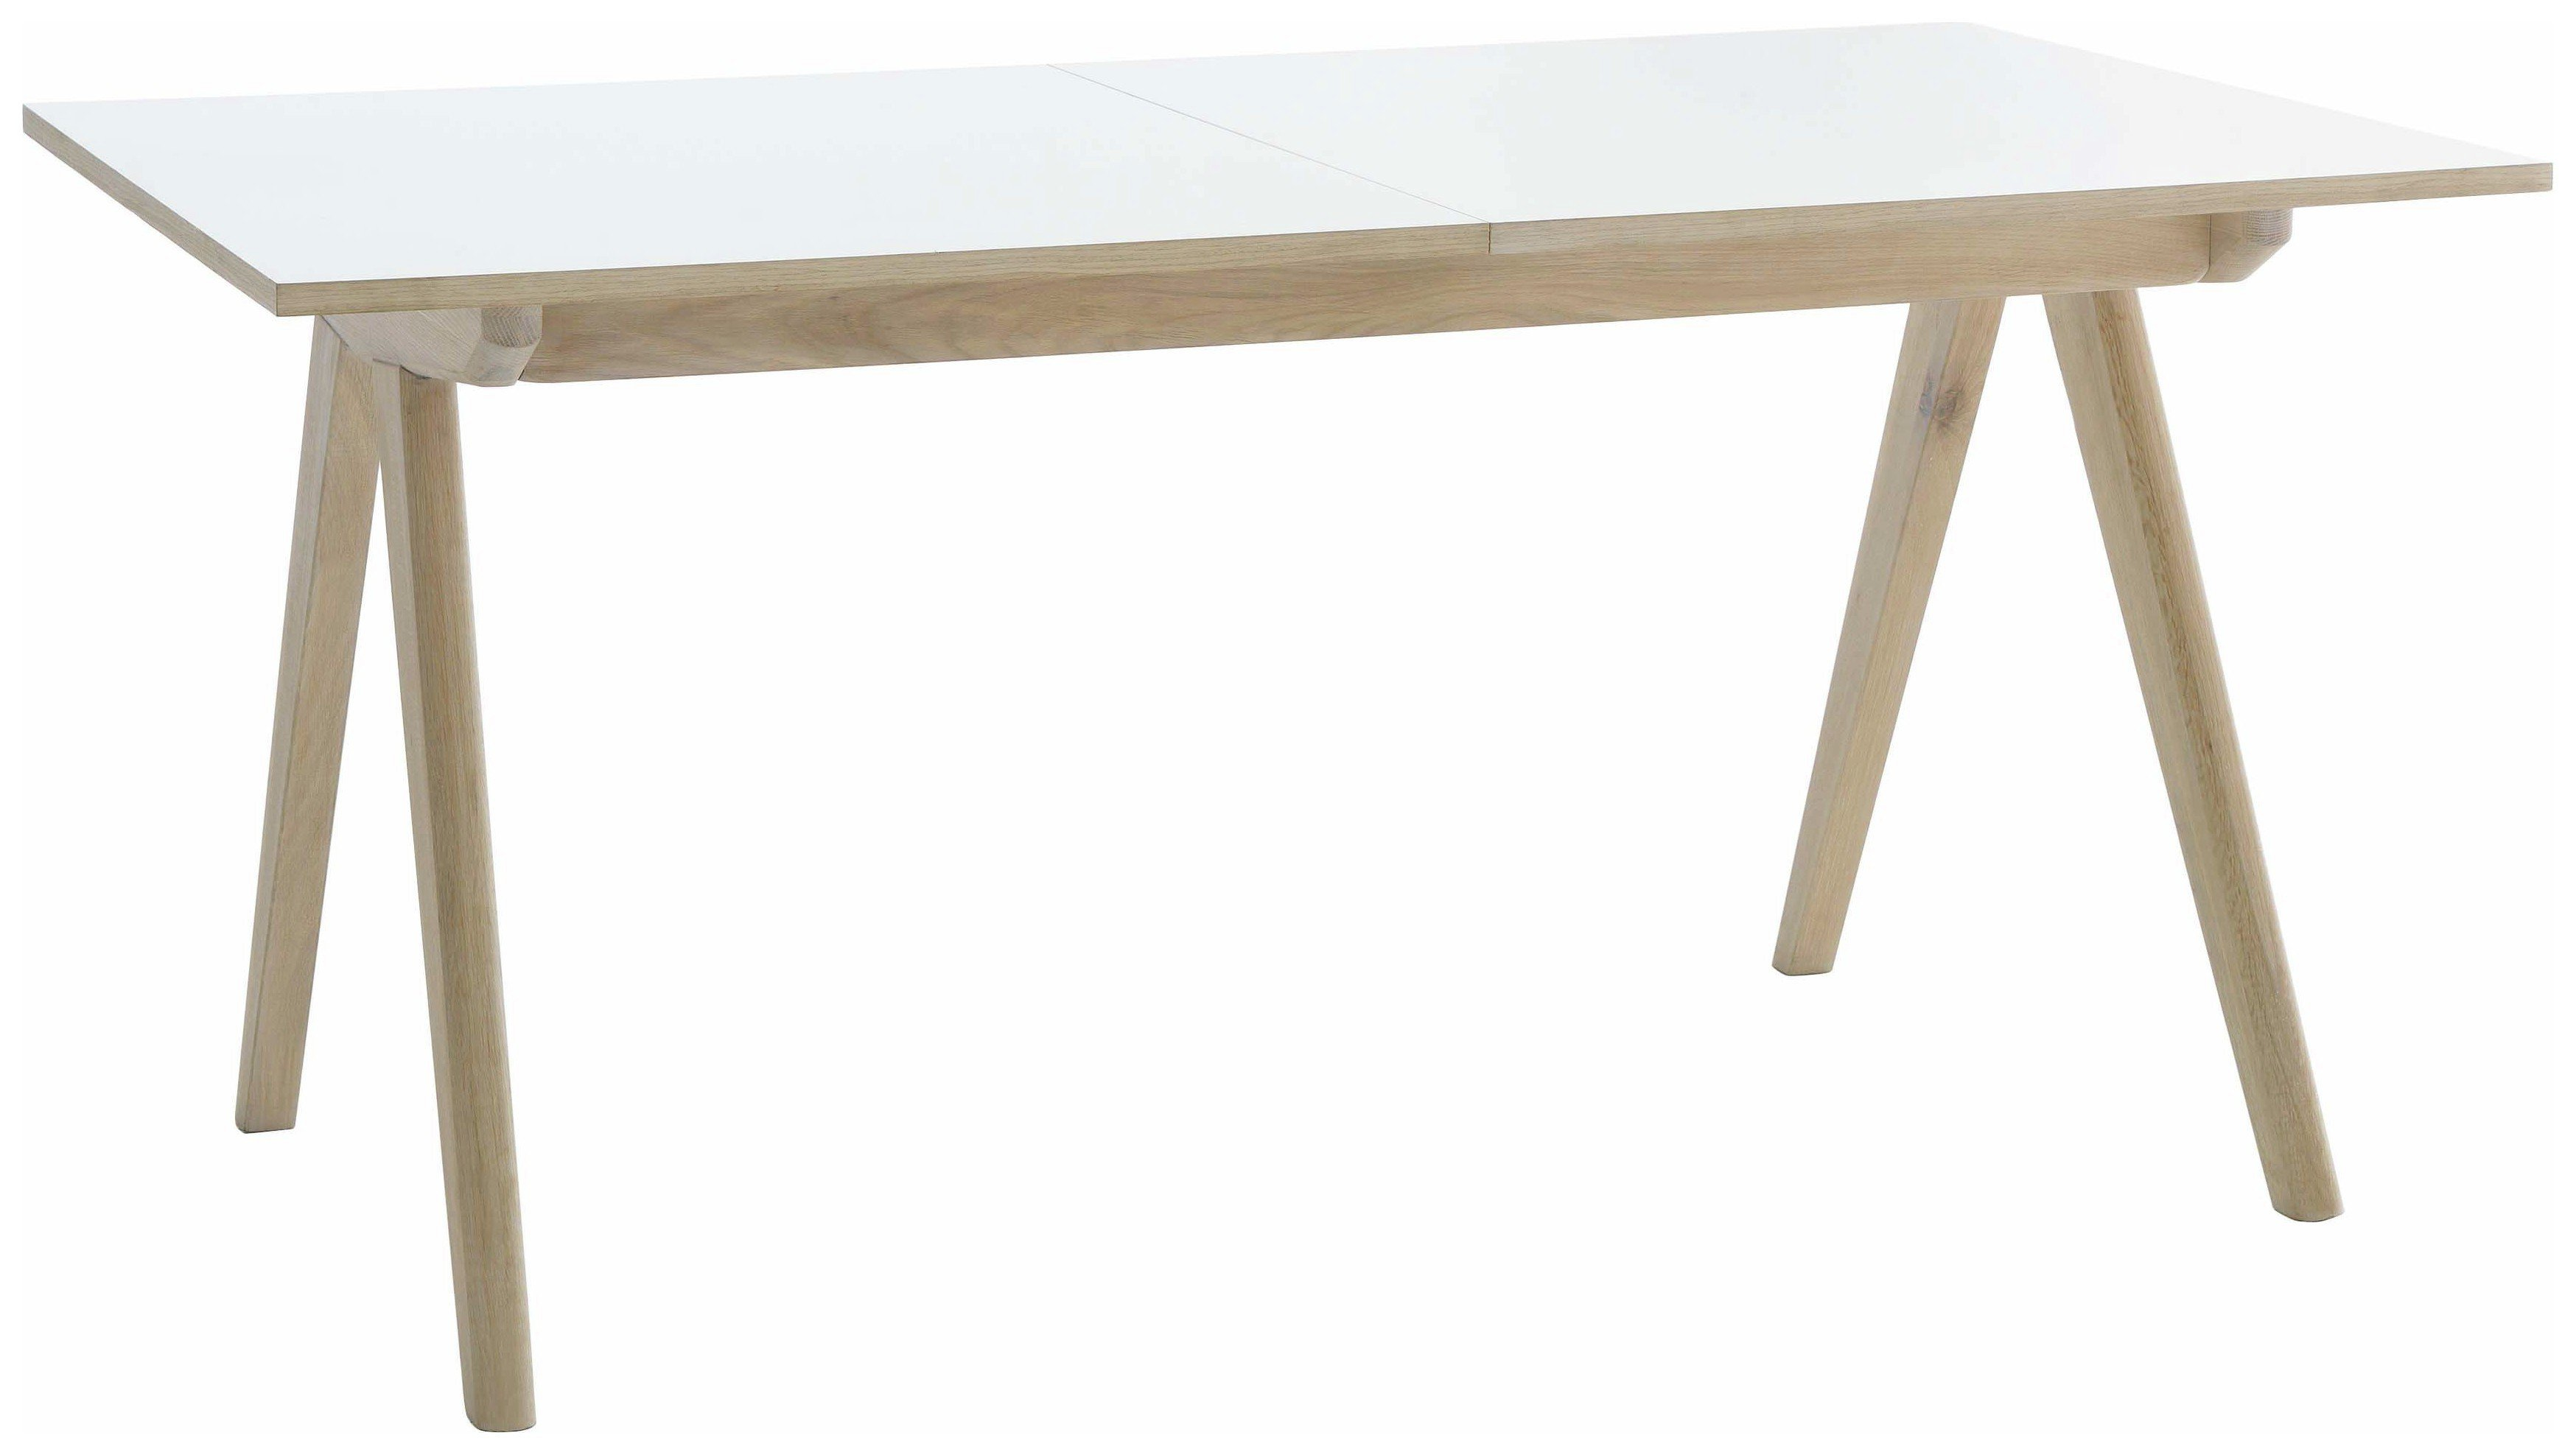 Habitat Jerry Extendable 8 Seater Dining Table review